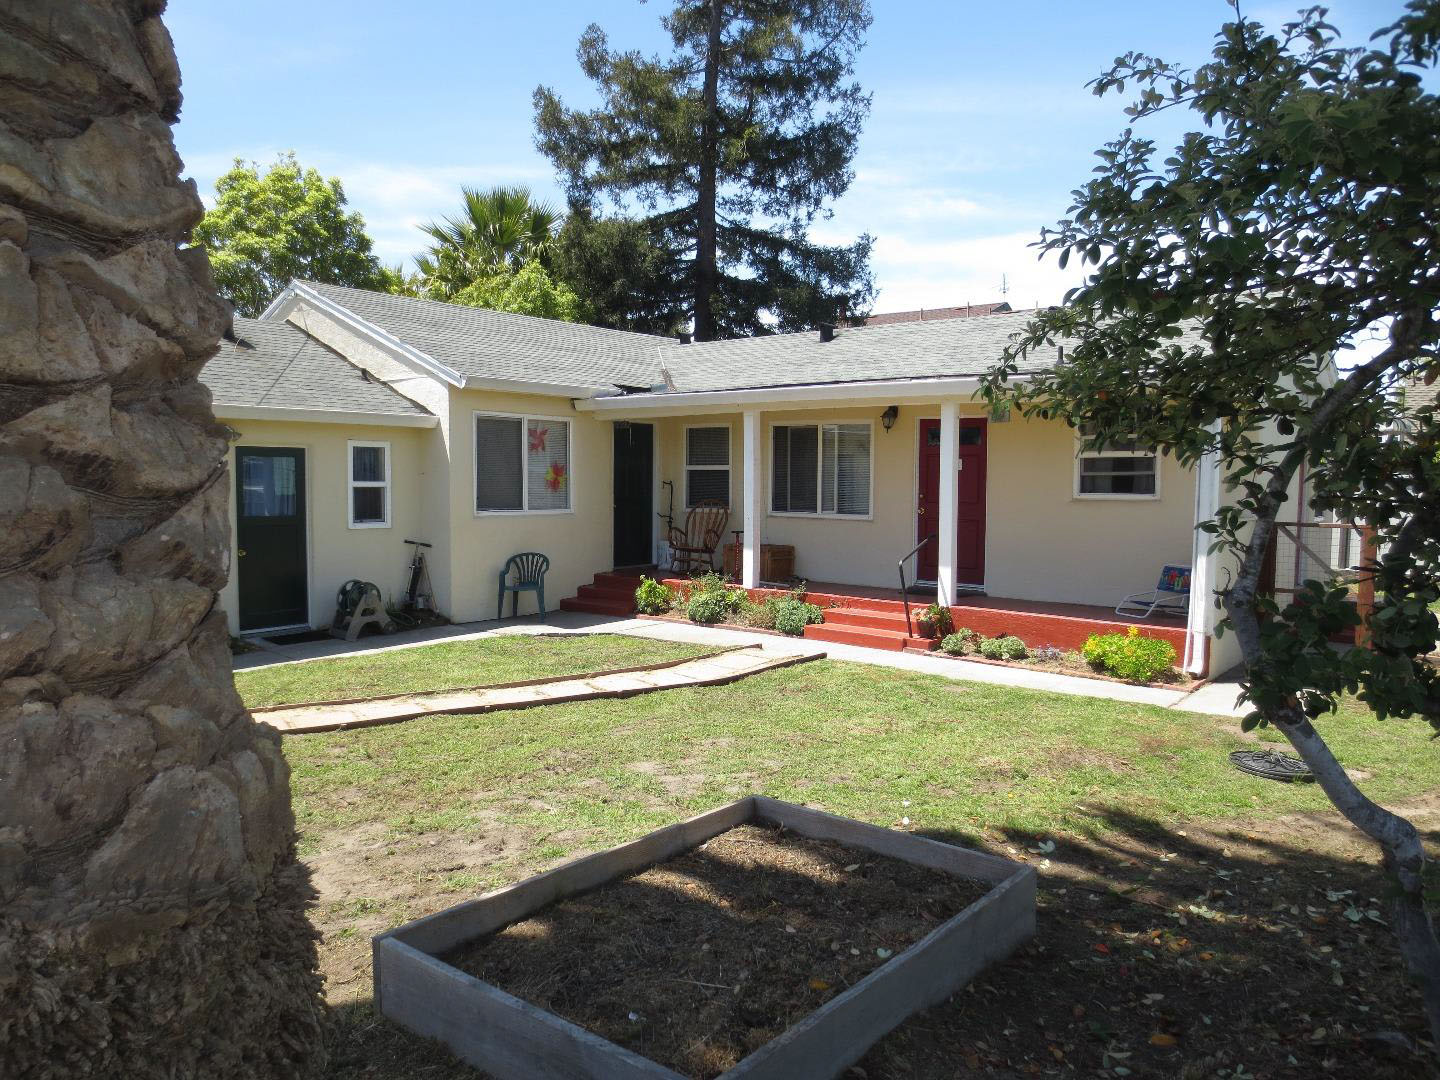 **SOLD 139/141 Dufour St., Santa Cruz • $715,400  3 Bedroom, 3 Bathroom • 1,415 Sq. Ft.